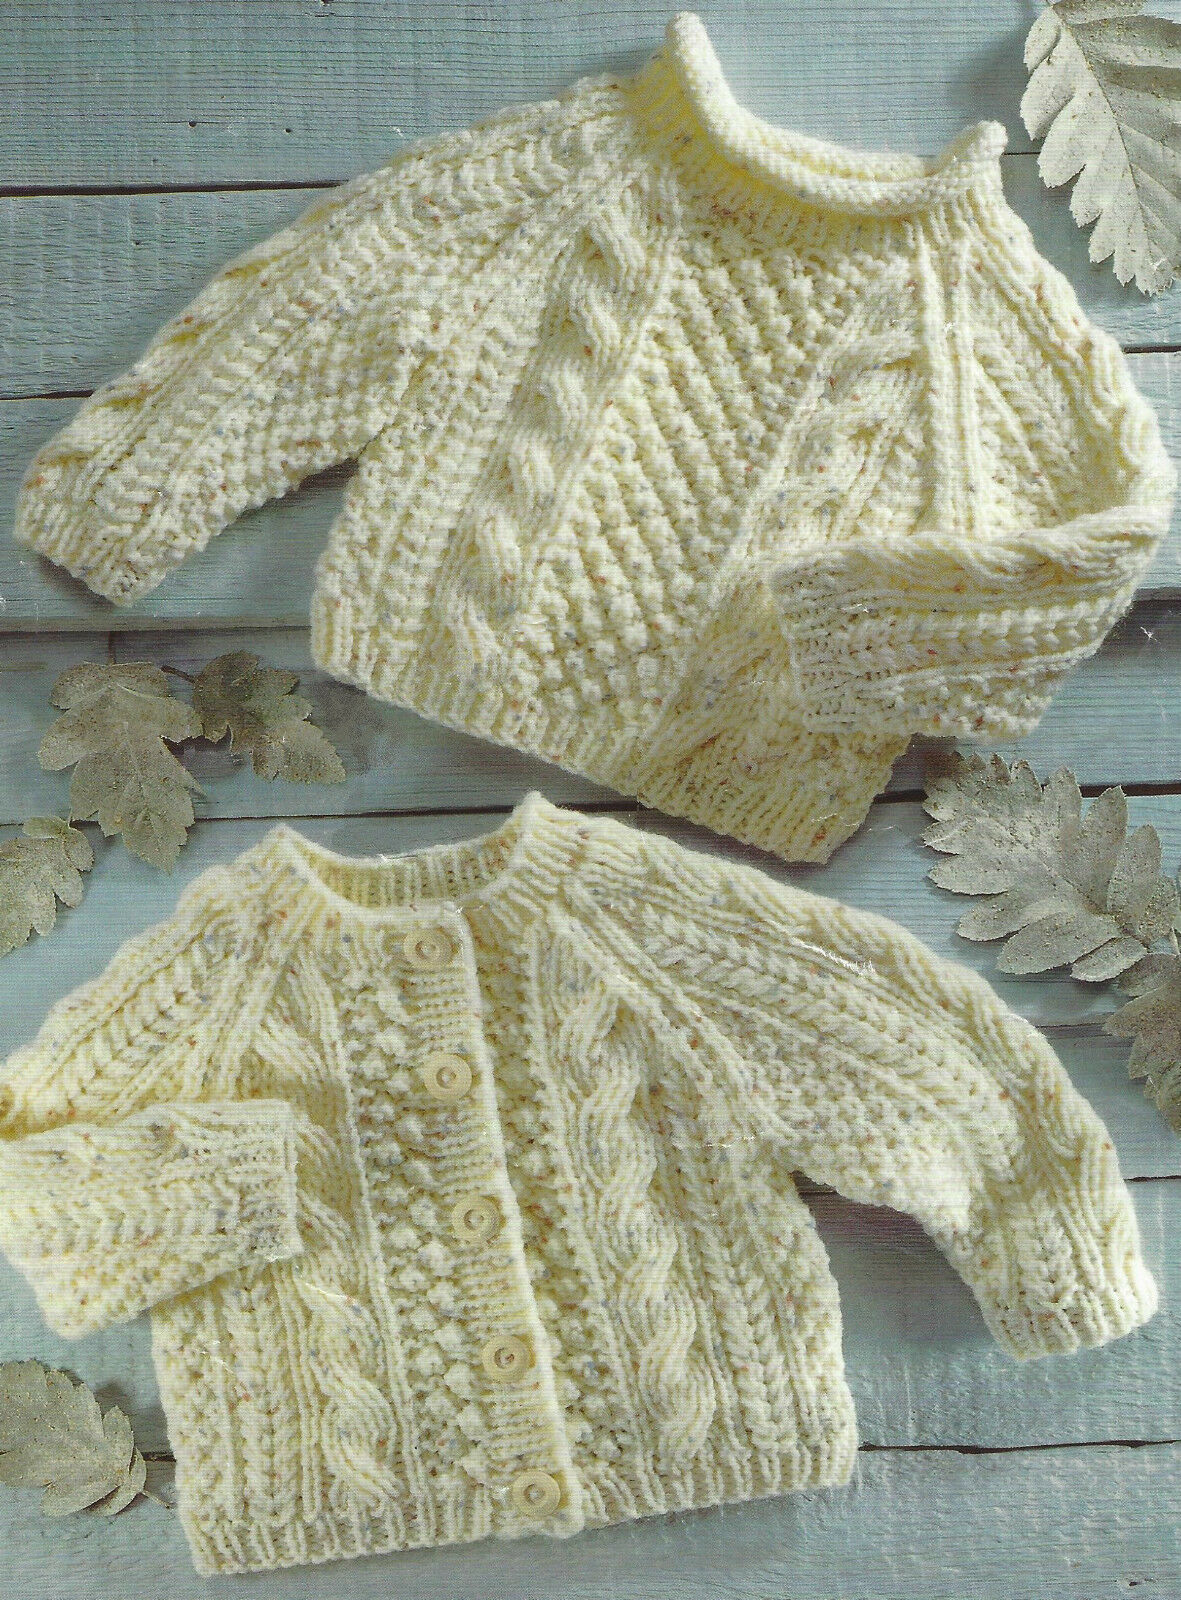 Free Download Baby Knitting Patterns : Aran Knitting Pattern Cardigan Sweater with cables Baby Girls Boys 16-26